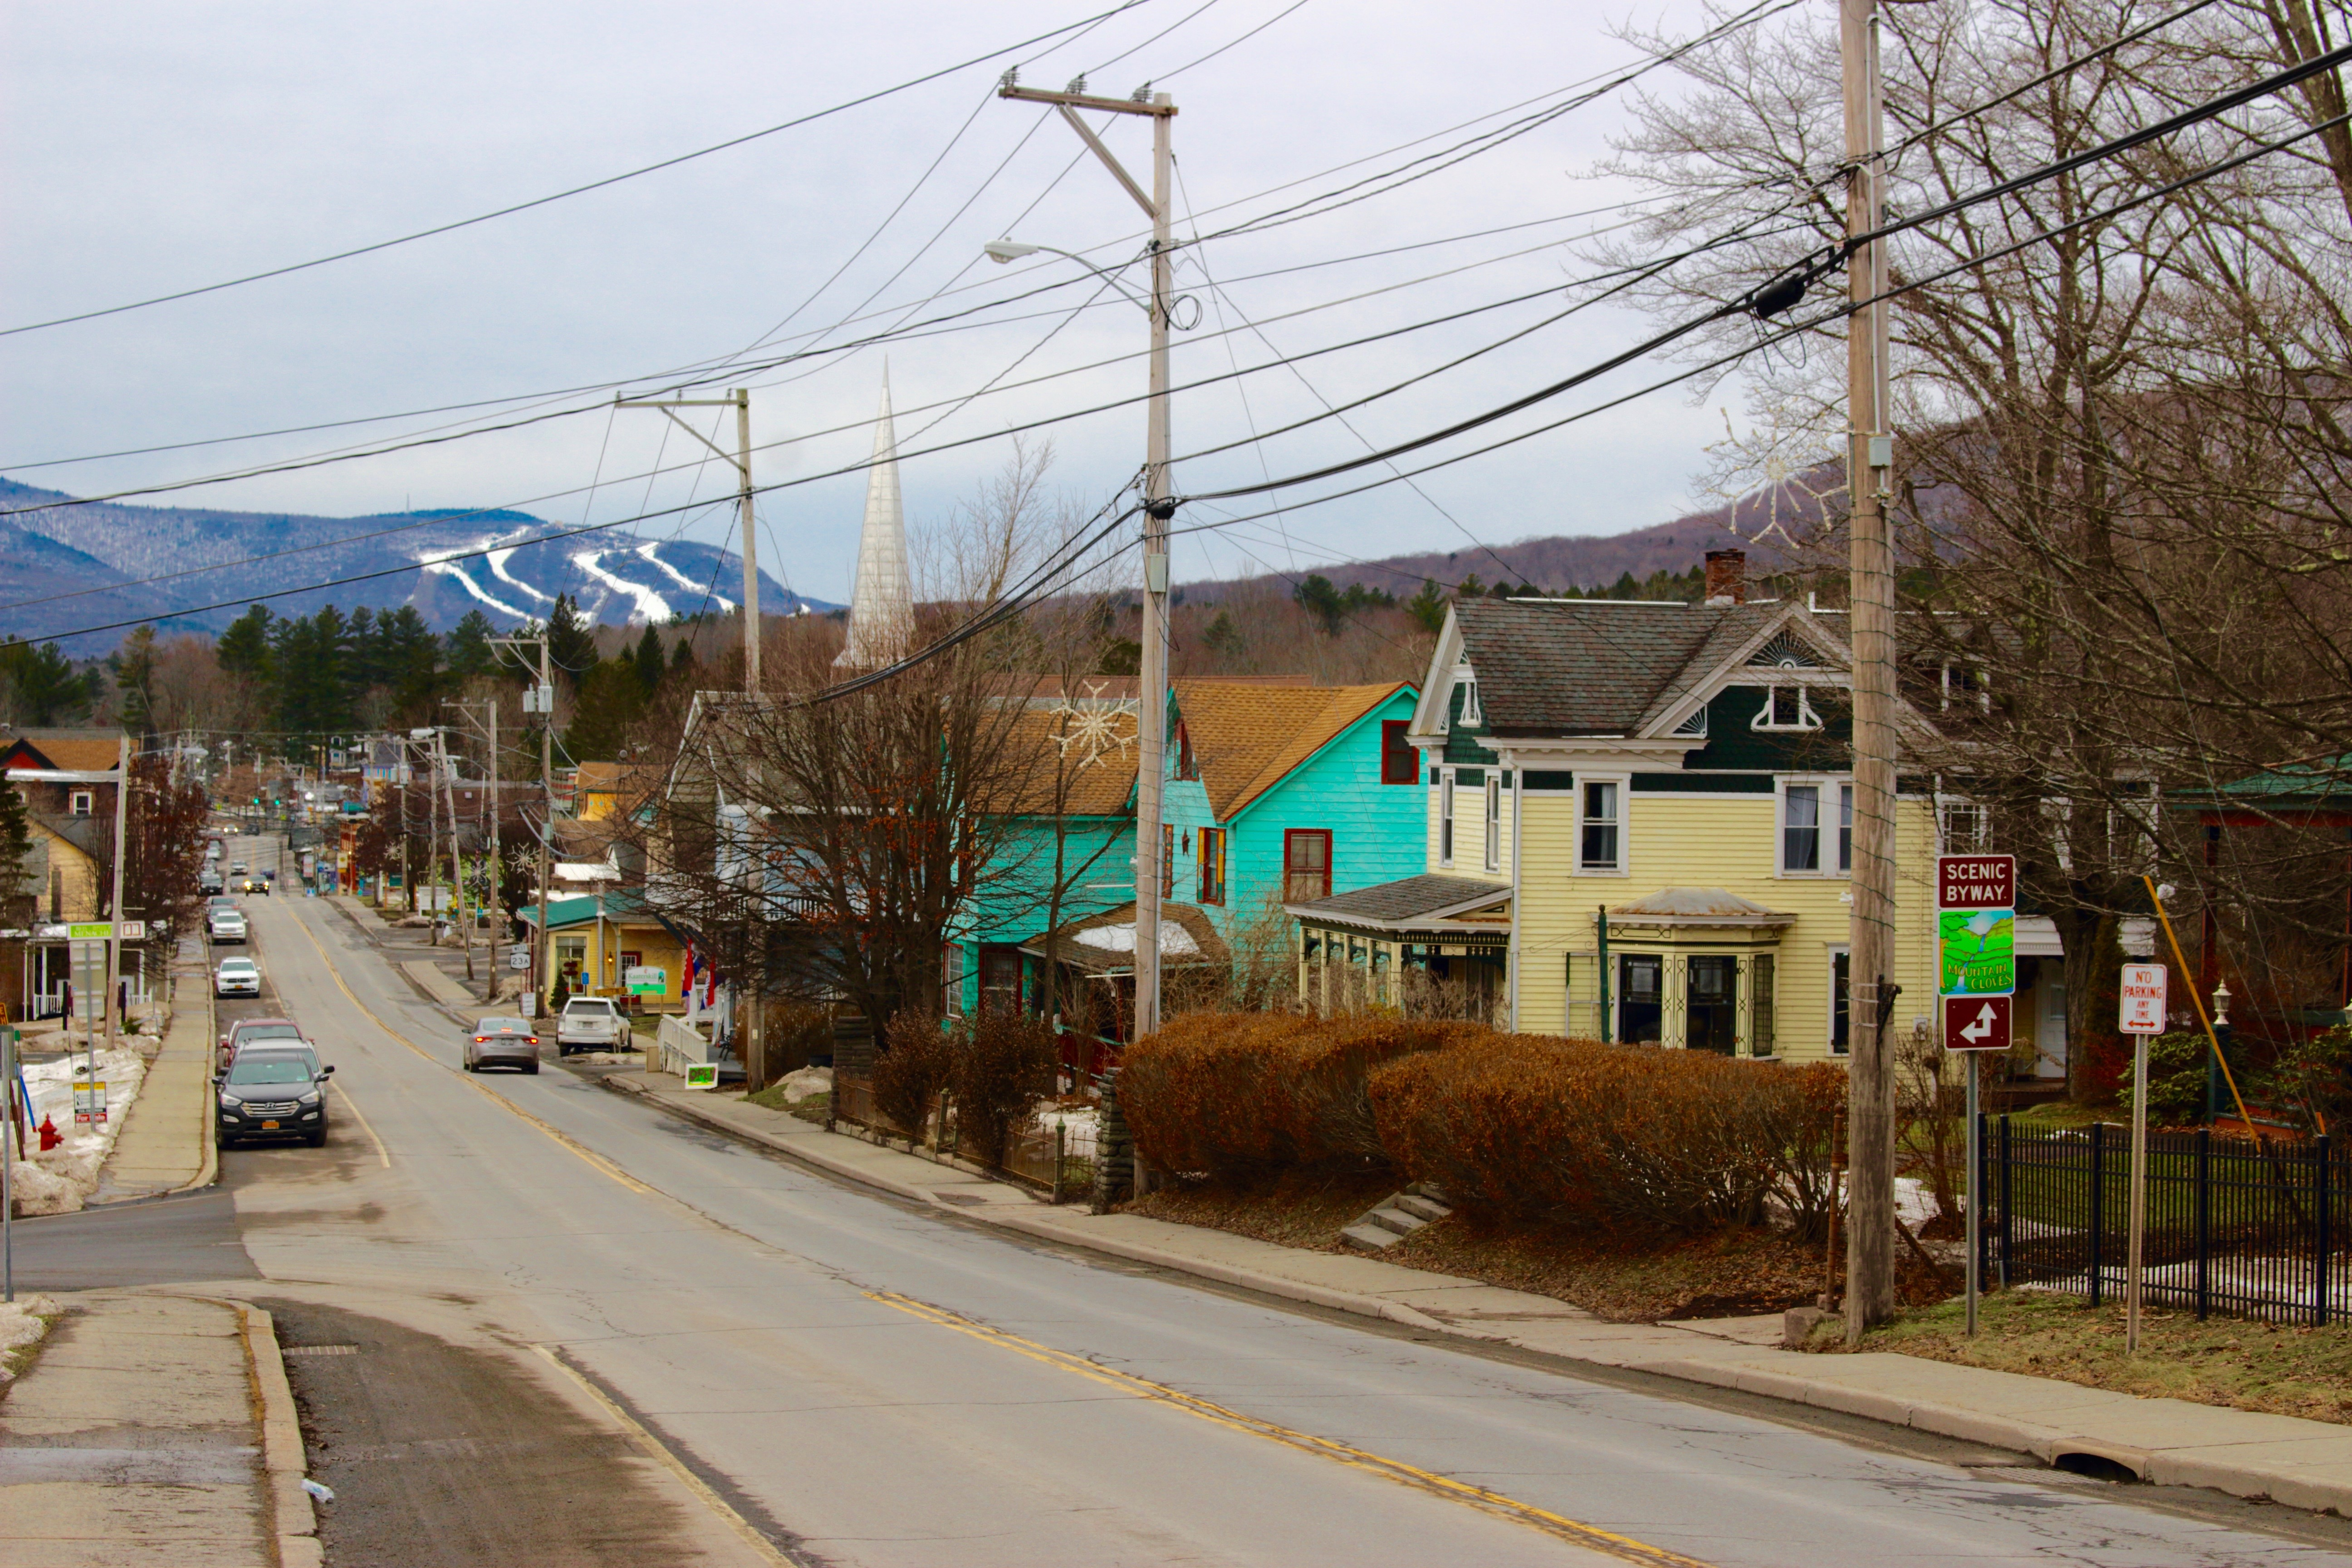 Downtown Tannersville looking up to Hunter Mountain